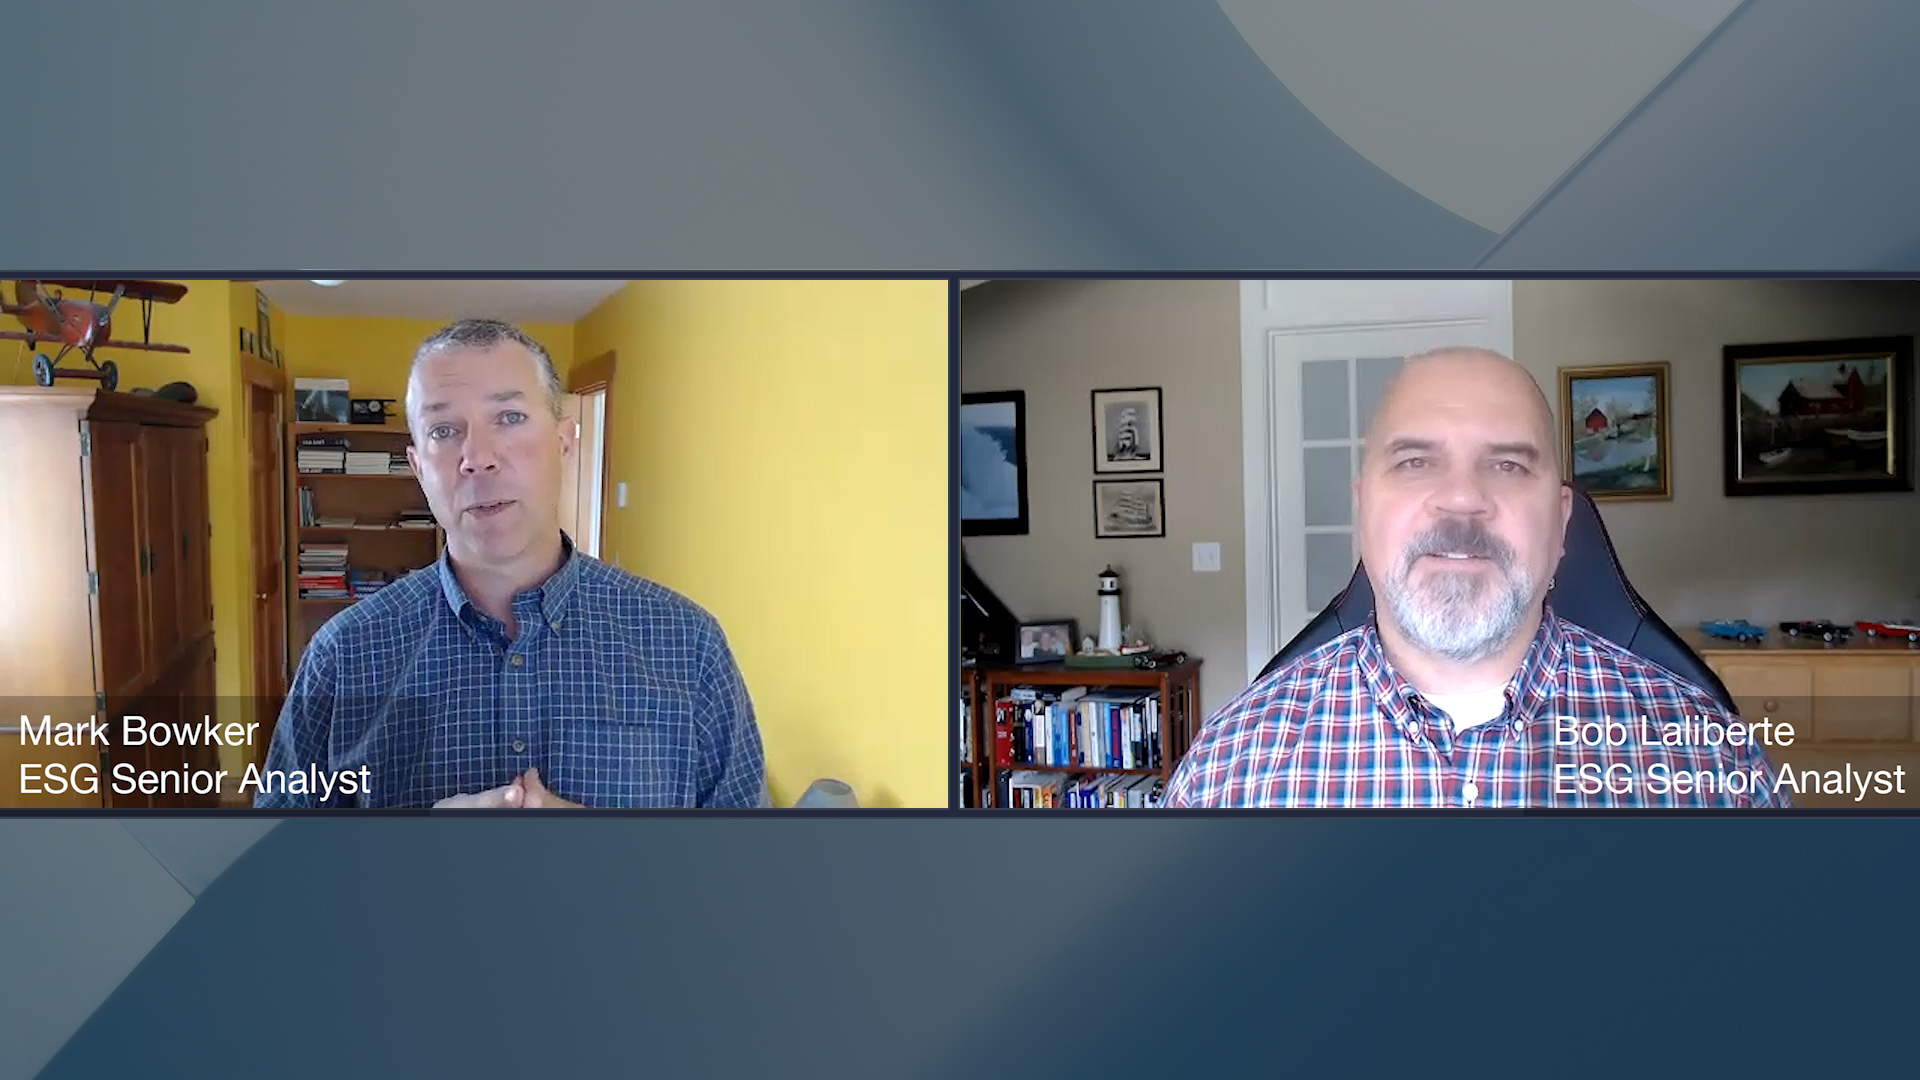 Distributed Cloud & Digital Ecosystems Research Conversation with Mark Bowker and Bob Laliberte (Video)